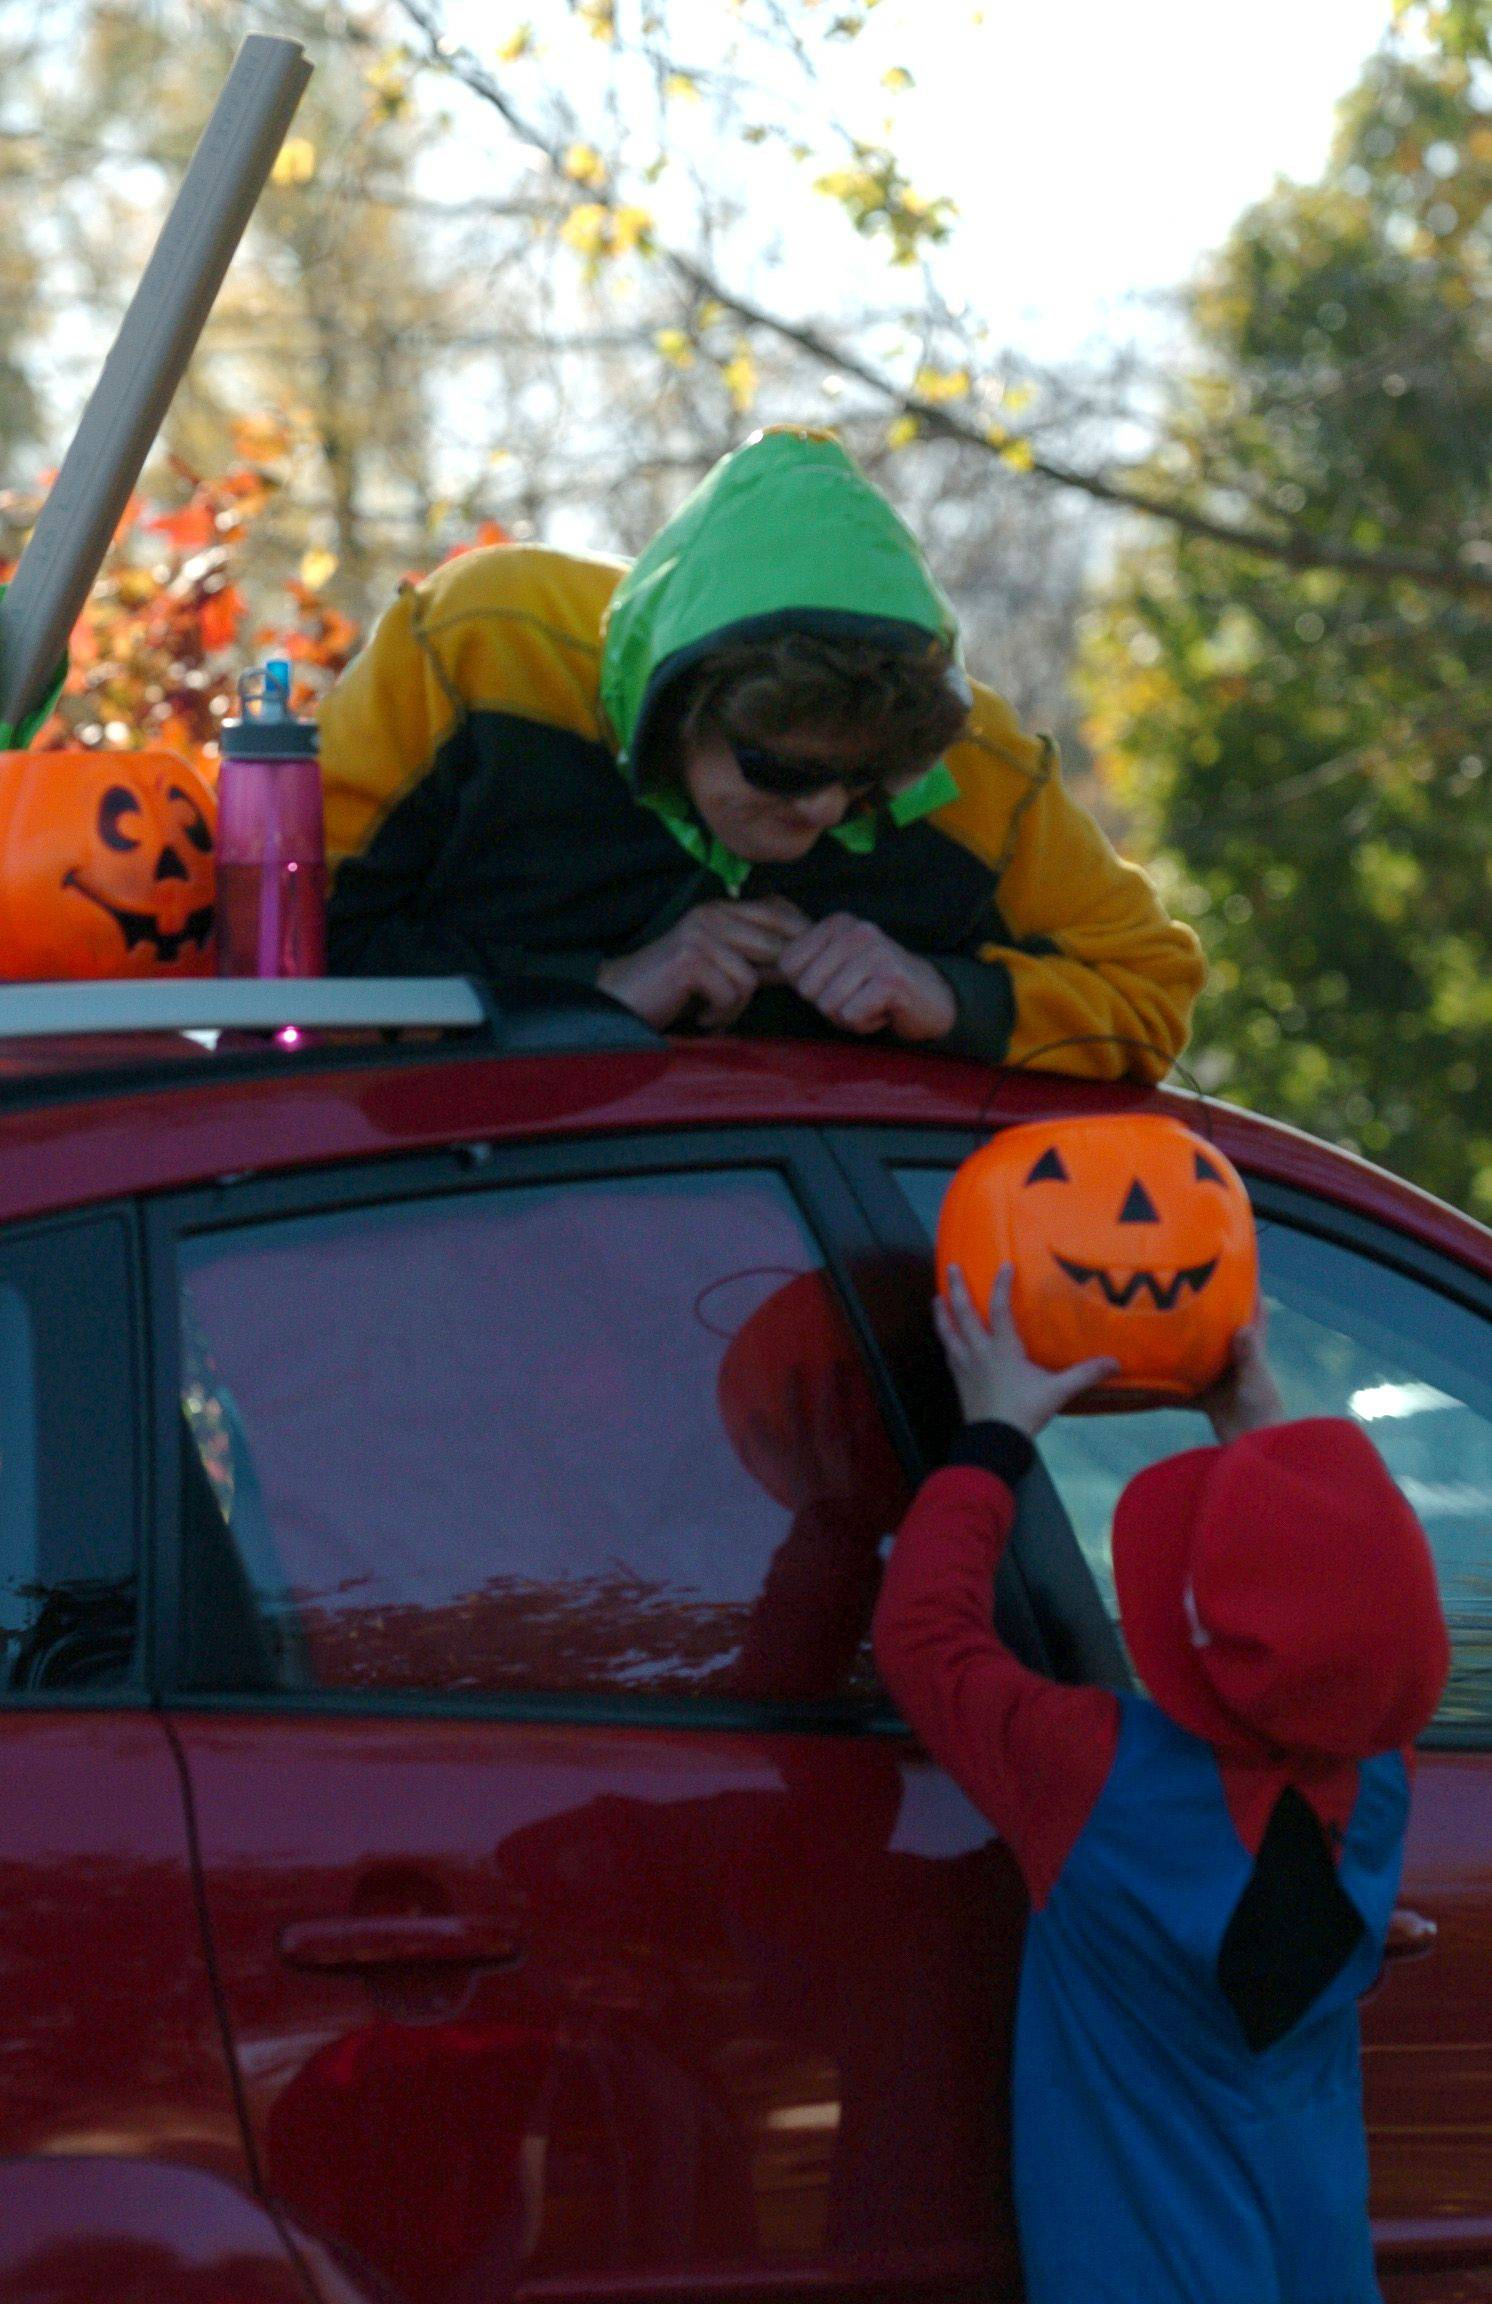 Paster Jan Comerford of Community United Methodist Church in South Elgin hands out candy dressed as a worm in her 'Pontiac apple' to 5-year-old Donald Lux during the Trunk-or-Treat event Sunday.